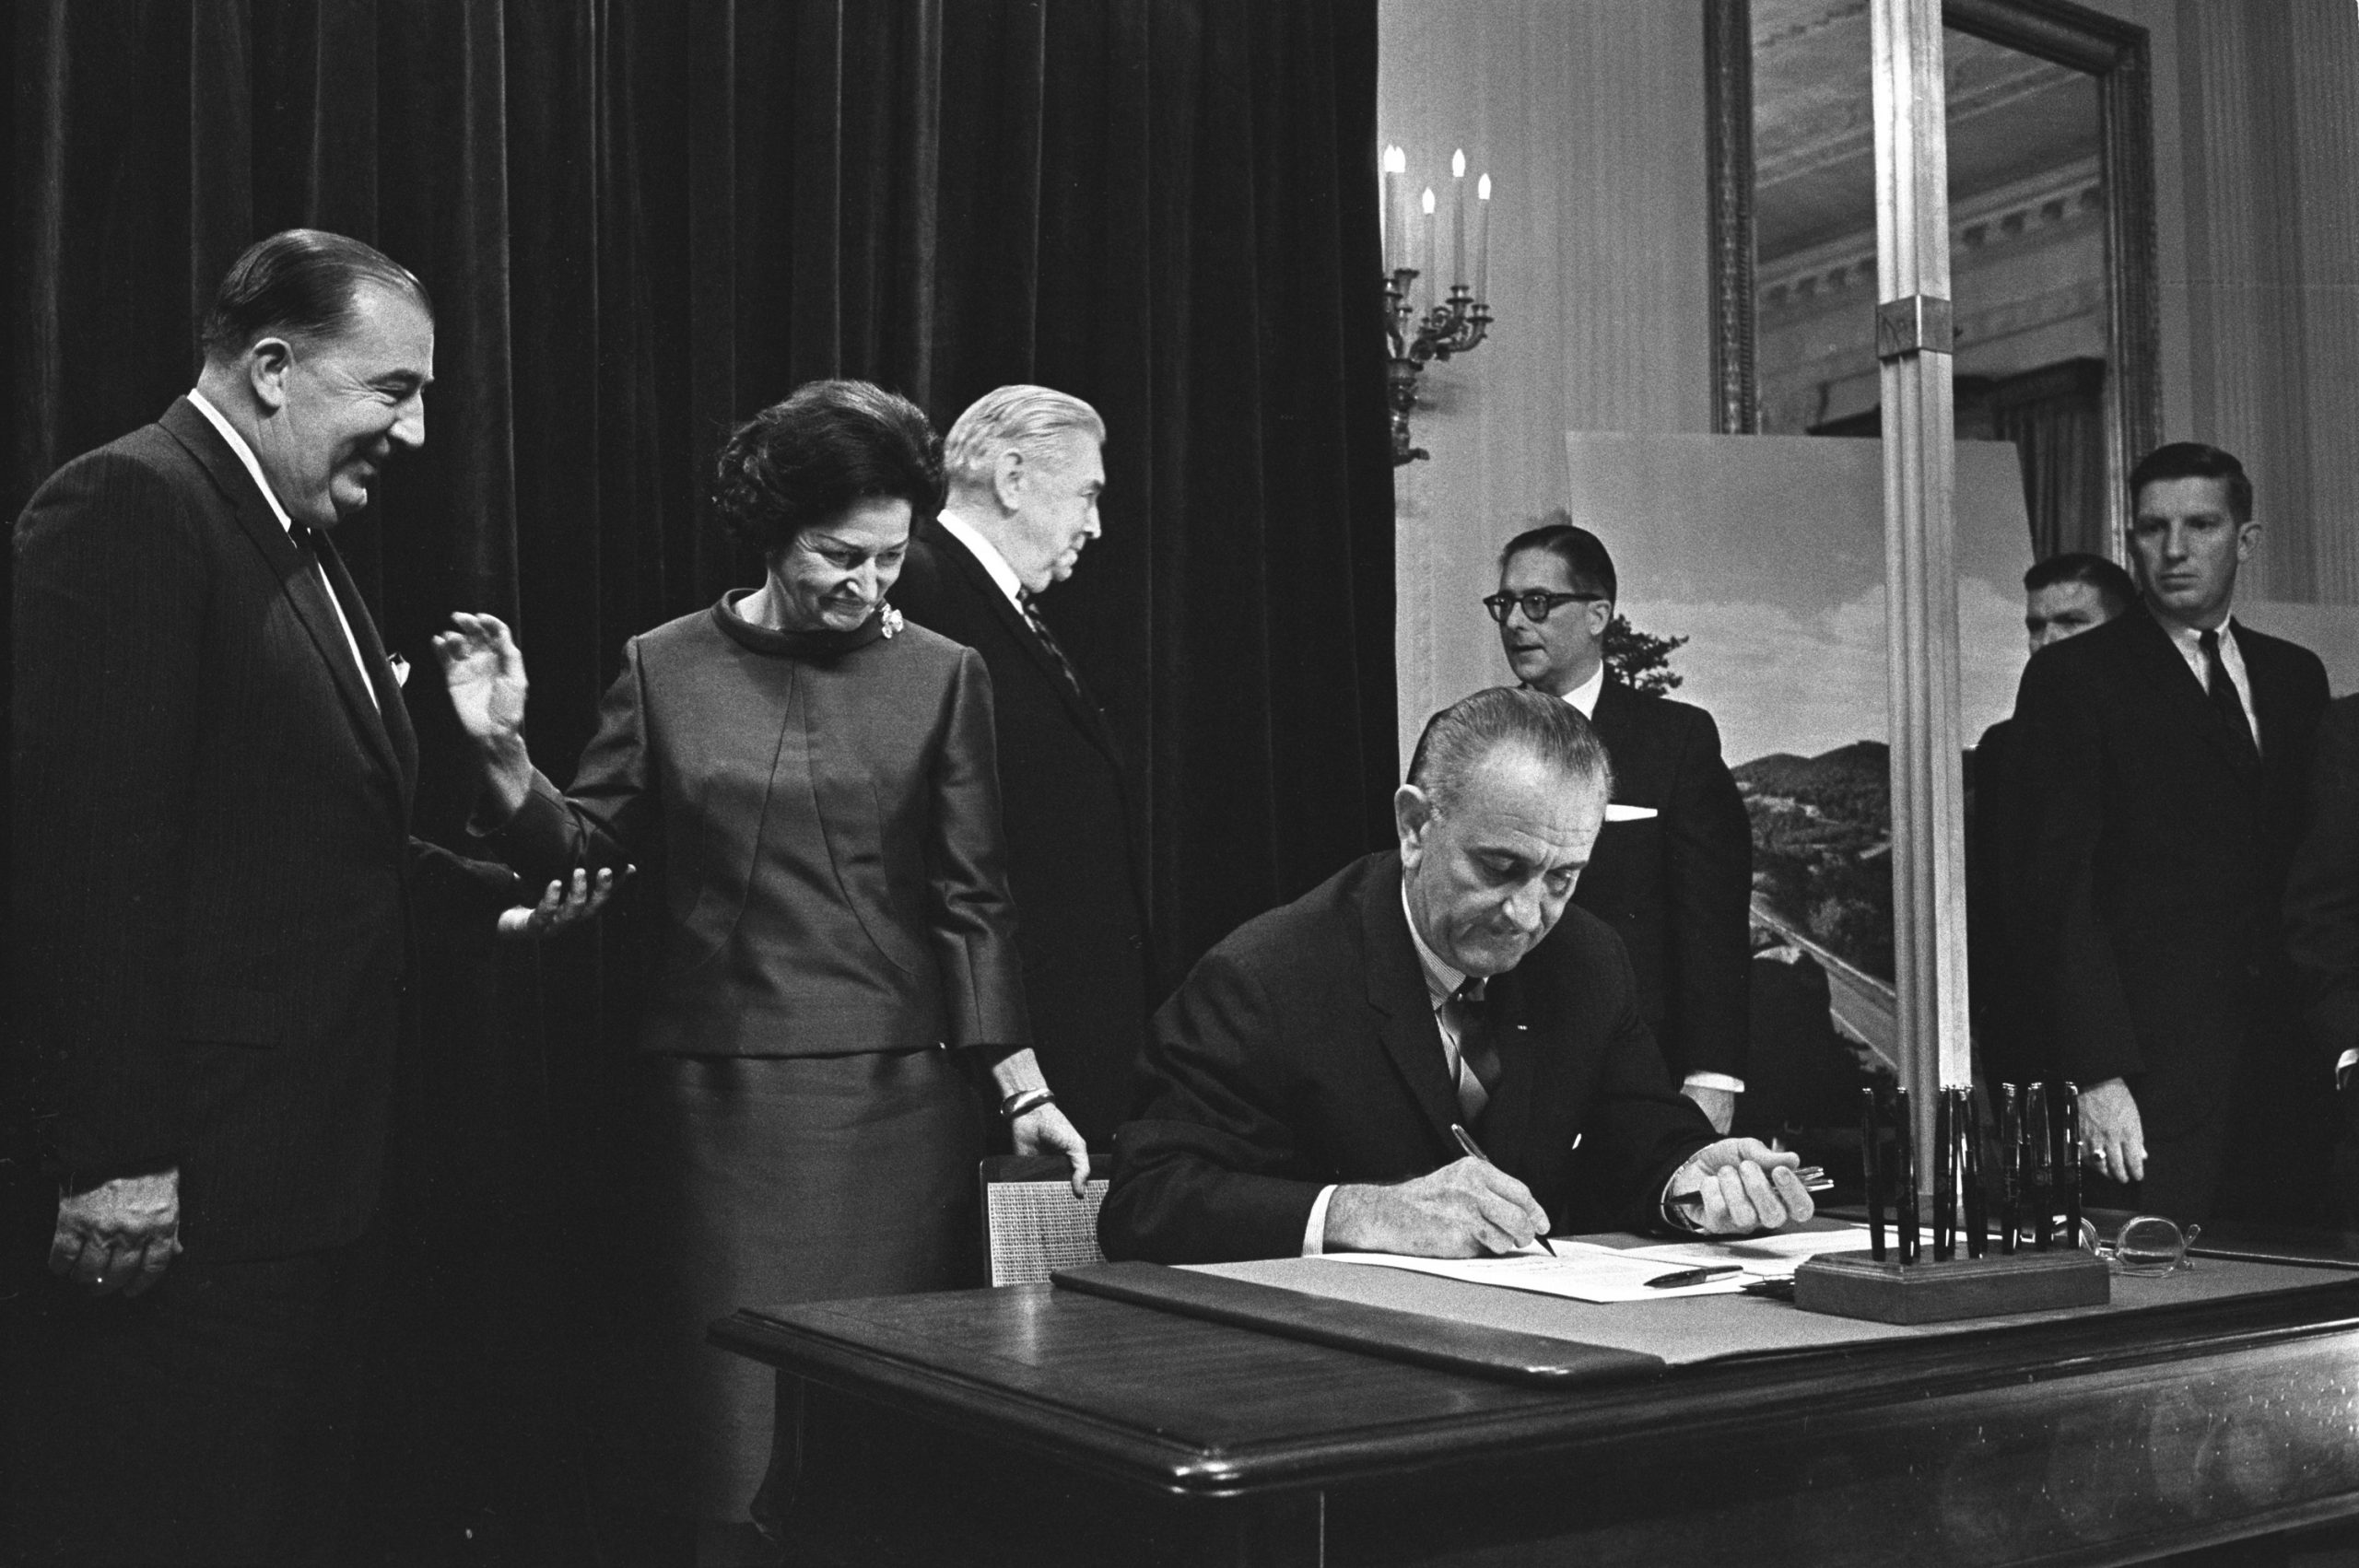 The National Historic Preservation Act of 1966 was signed into law under President Lyndon B. Johnson. Pictured above, just one year prior, President Johnson signed the Highway Beautification Act of 1965.